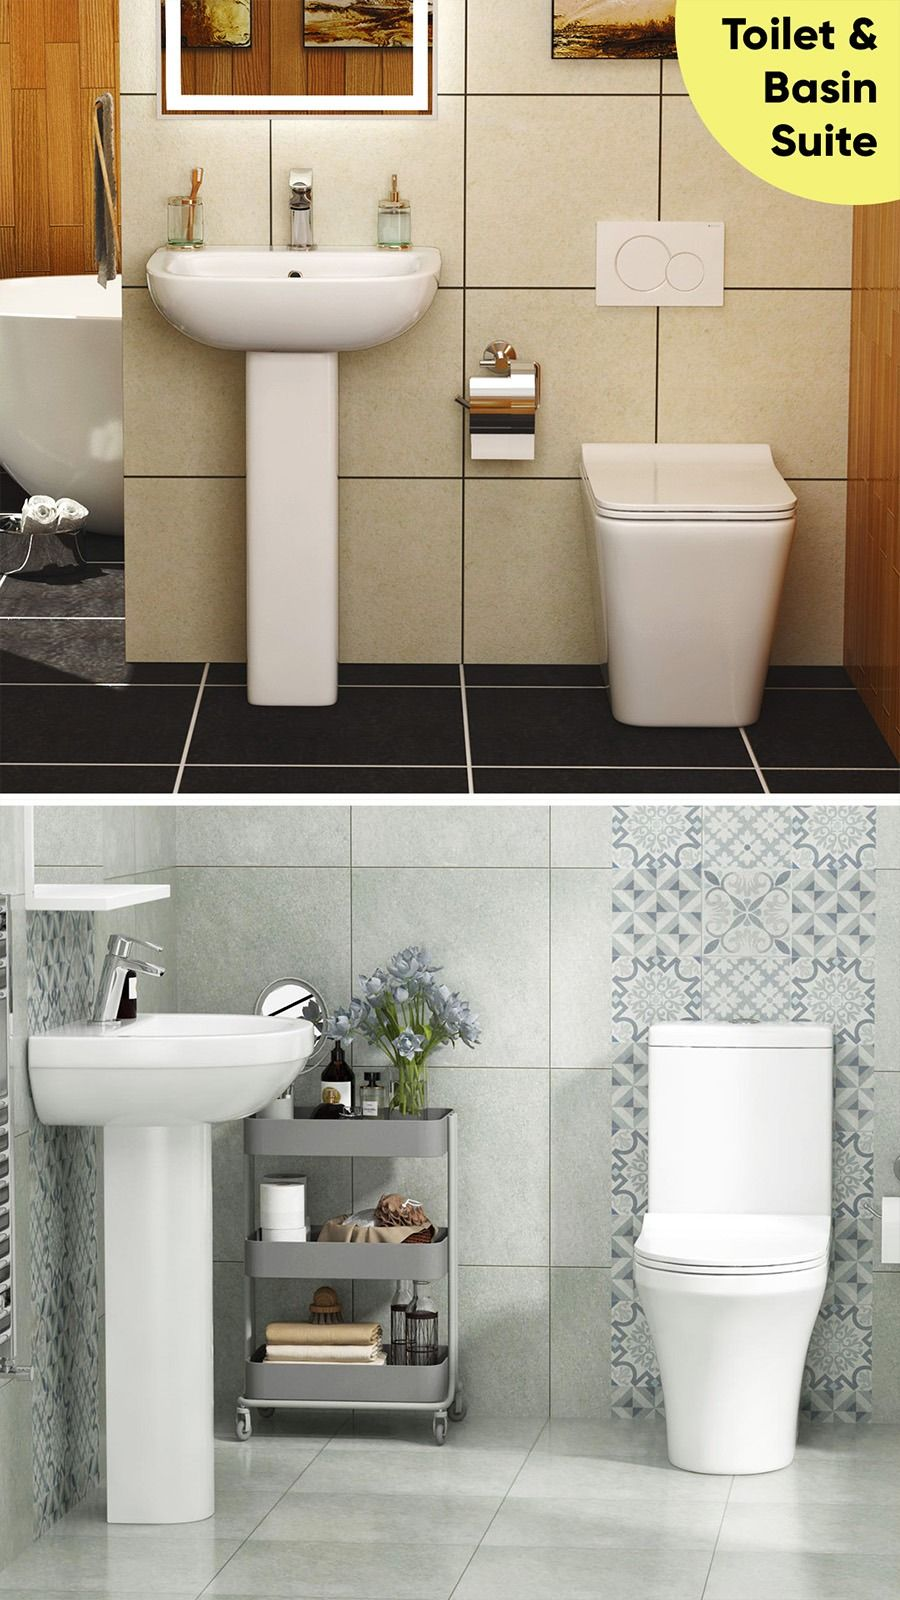 Pin By Royal Bathrooms On Royal Bathroom Suites Small Bathroom Suites Bathroom Trends Modern Toilet